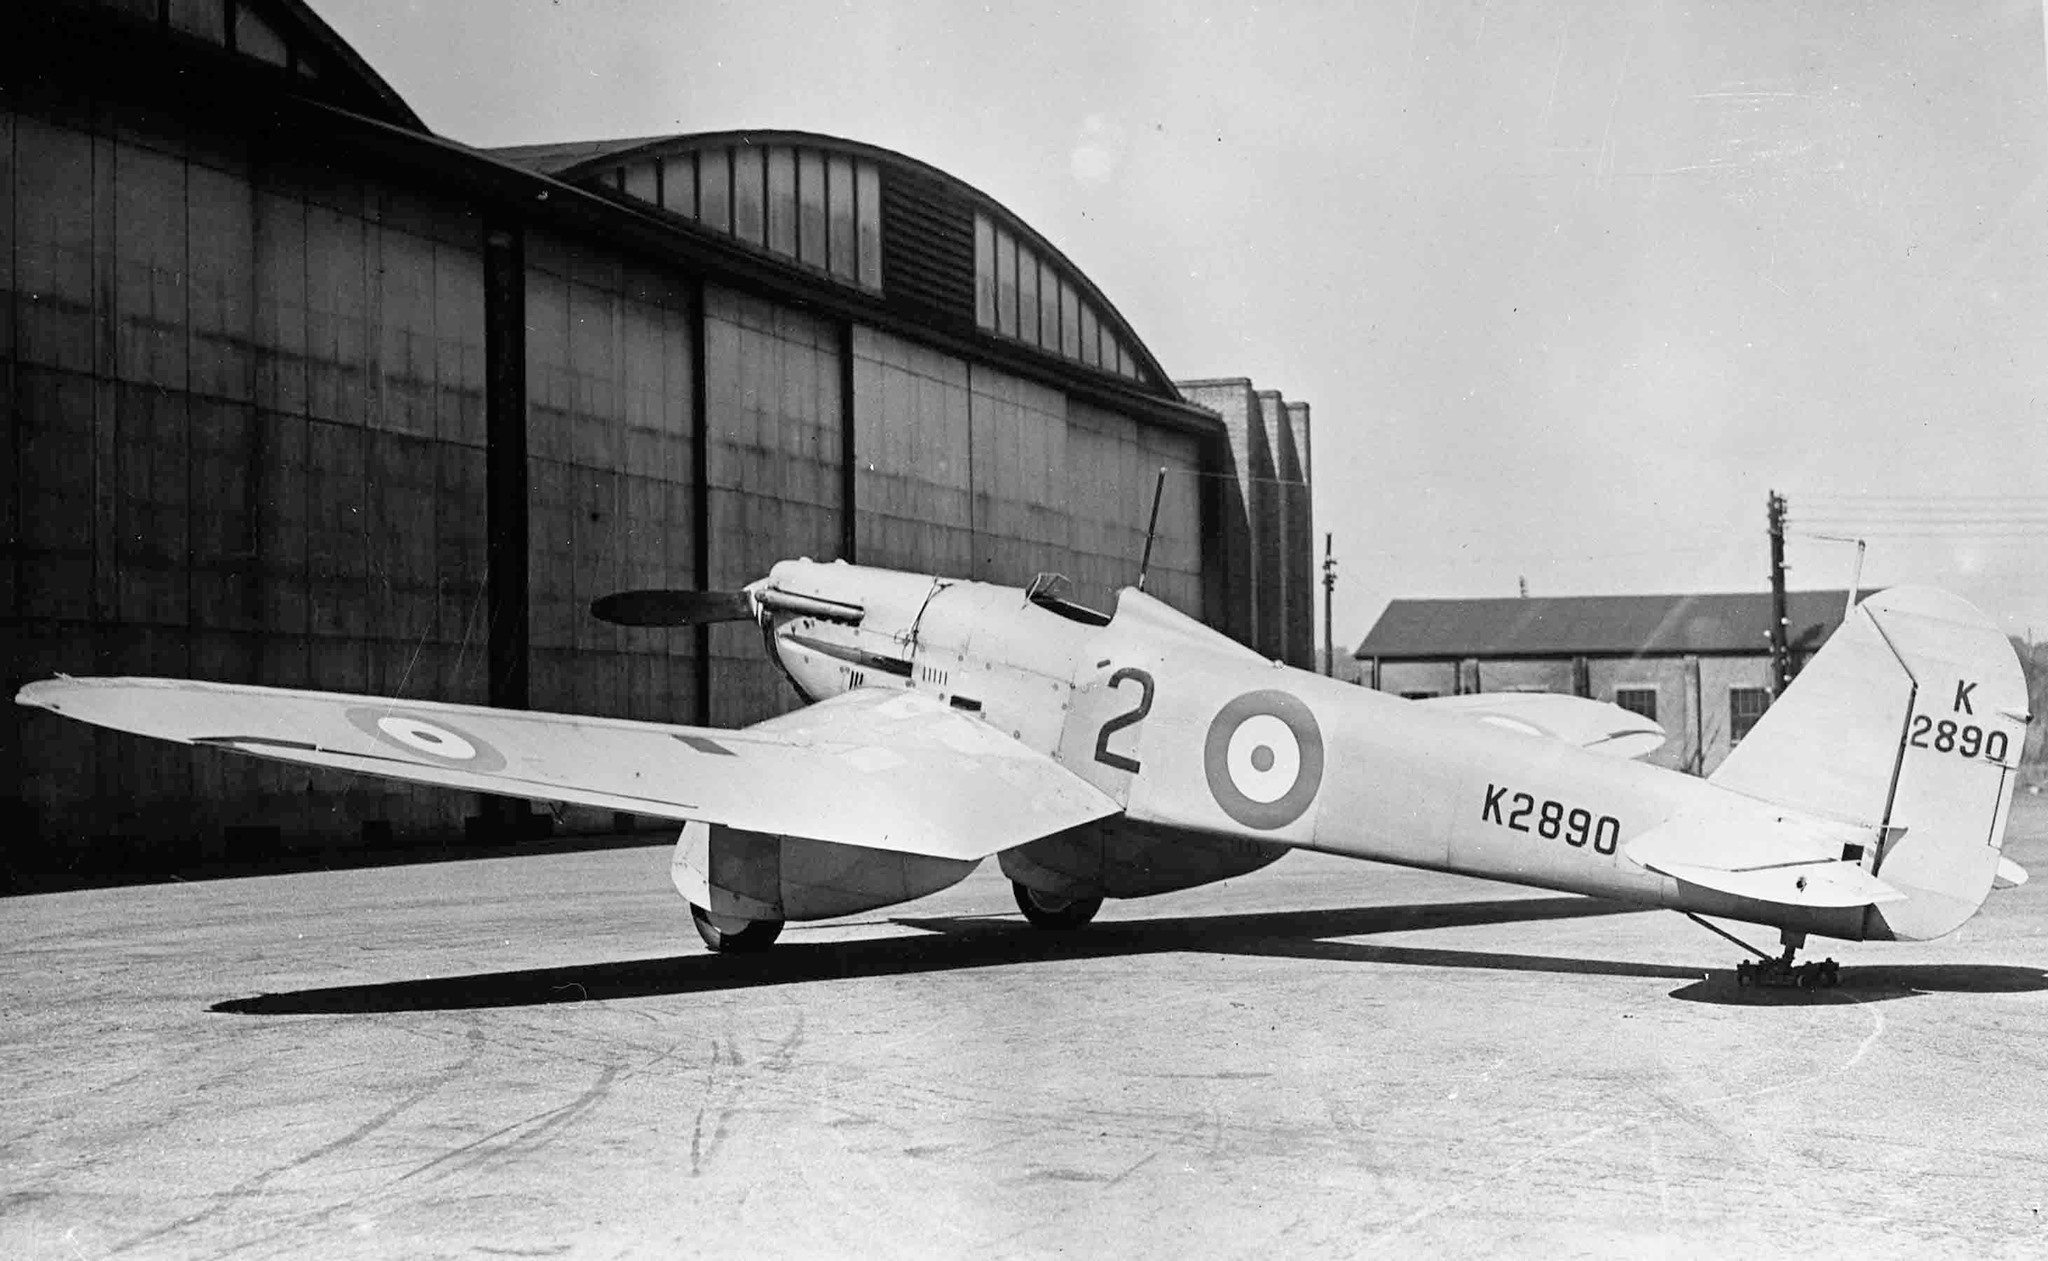 The Supermarine Model 224 had a fixed landing gear. The wing had an inverted gull configuration, meaning that it had a sharp bend downward. This was to make the fixed landing gear shorter. It also had evaporative cooling at the wing leading edges. The idea turned out to be impractical. The Model 224 was slower than the Gloster Gladiator biplane.